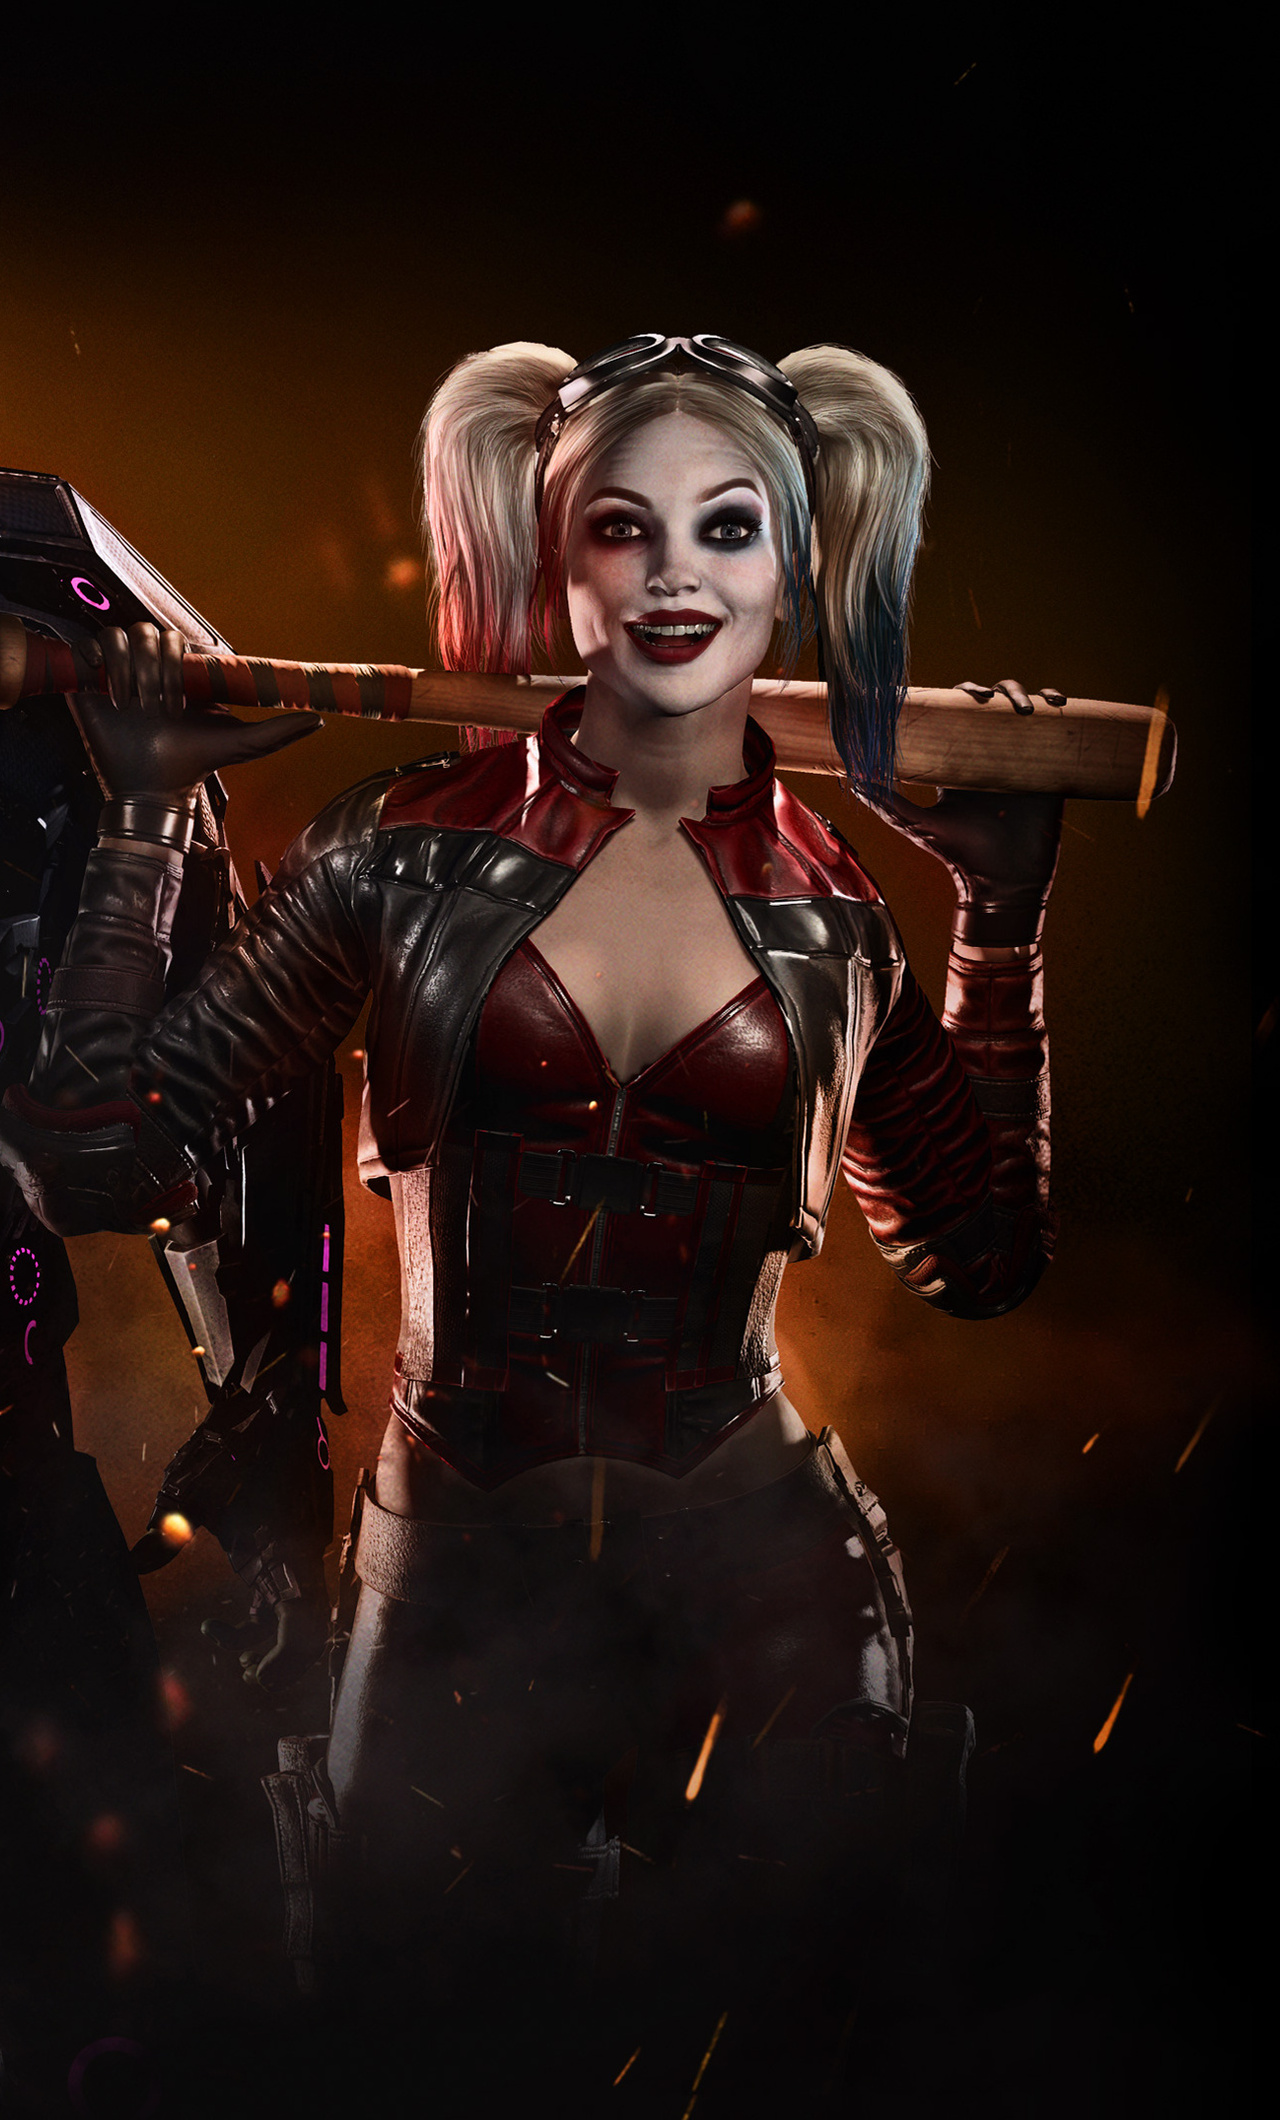 1280x2120 Injustice 2 Supergirl Harley Quinn 4k Iphone 6 Hd